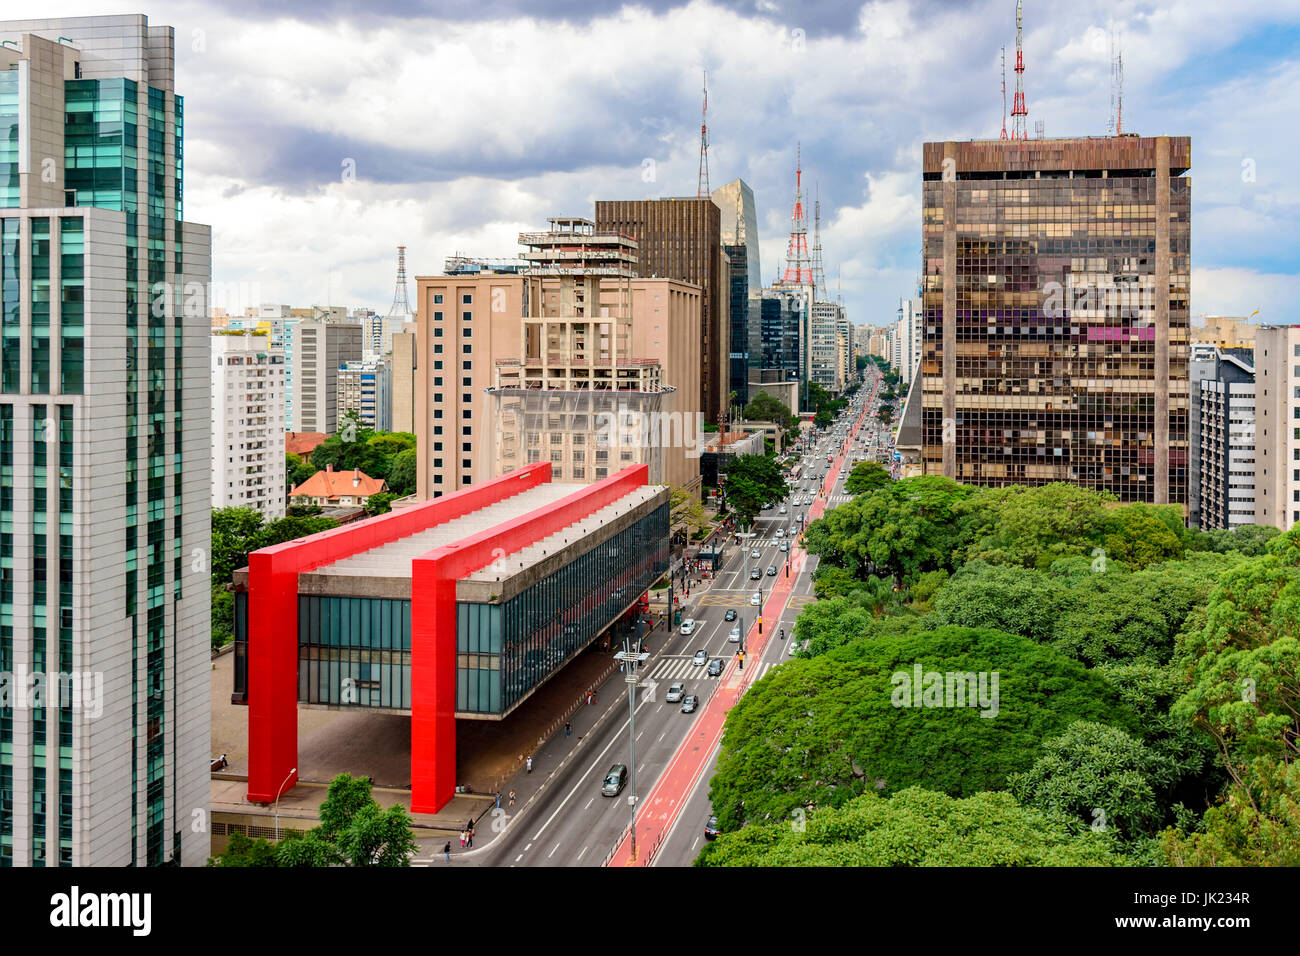 Avenida Paulista Financial Center Of Sao Paulo And Brazil And The Masp Seen From Above With Its Commercial Buildings And Intense Movement Of People A